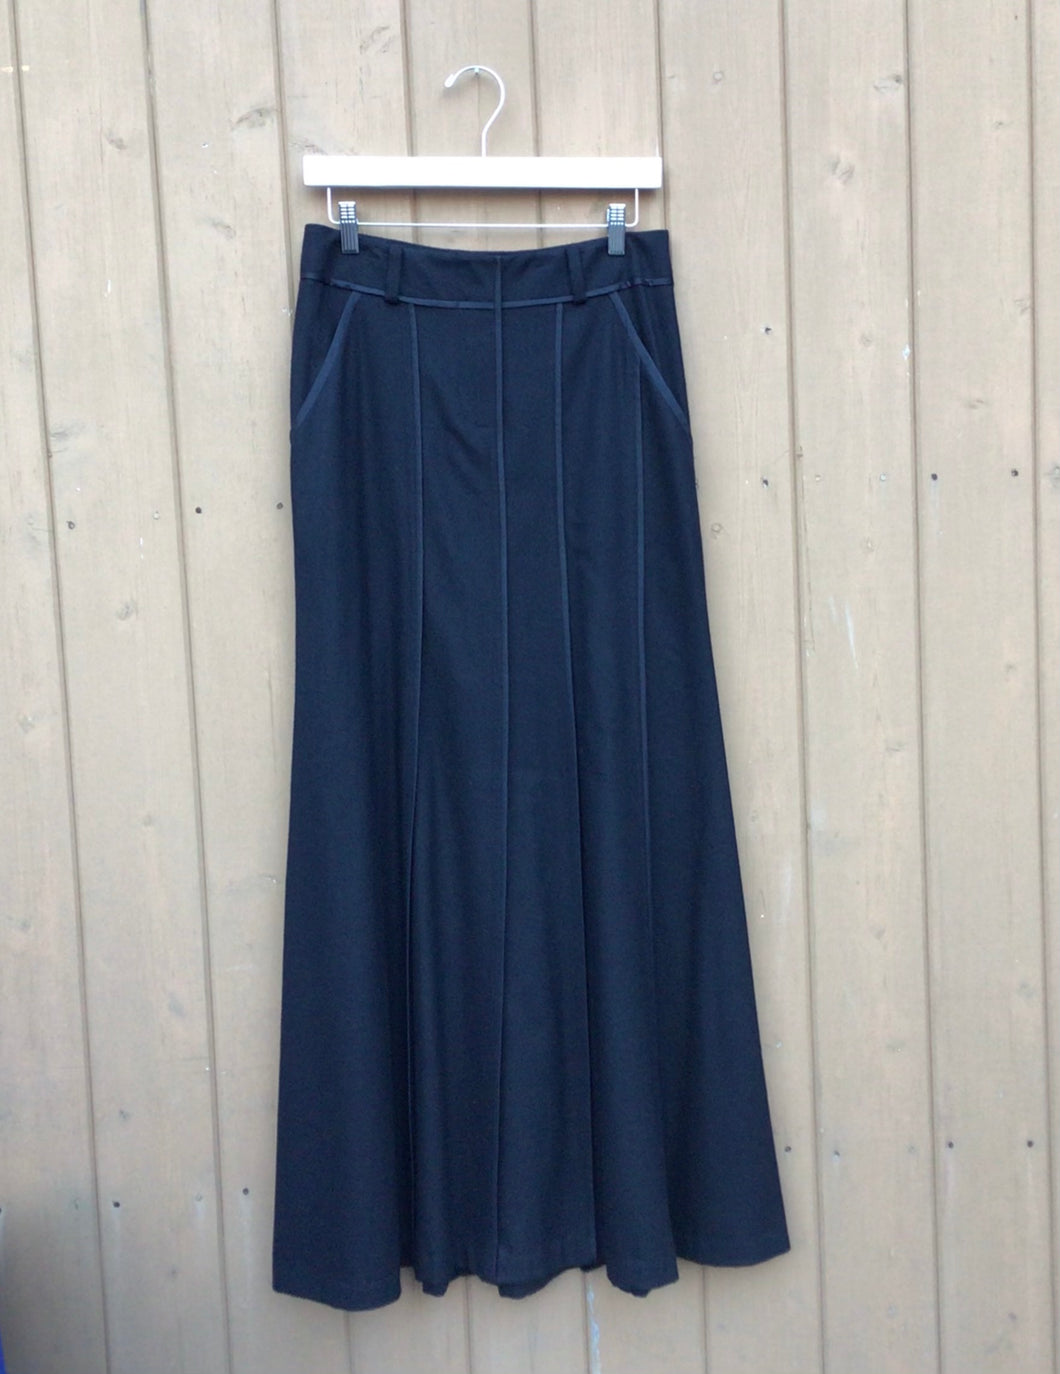 DKNY Wool/Cashmere Skirt